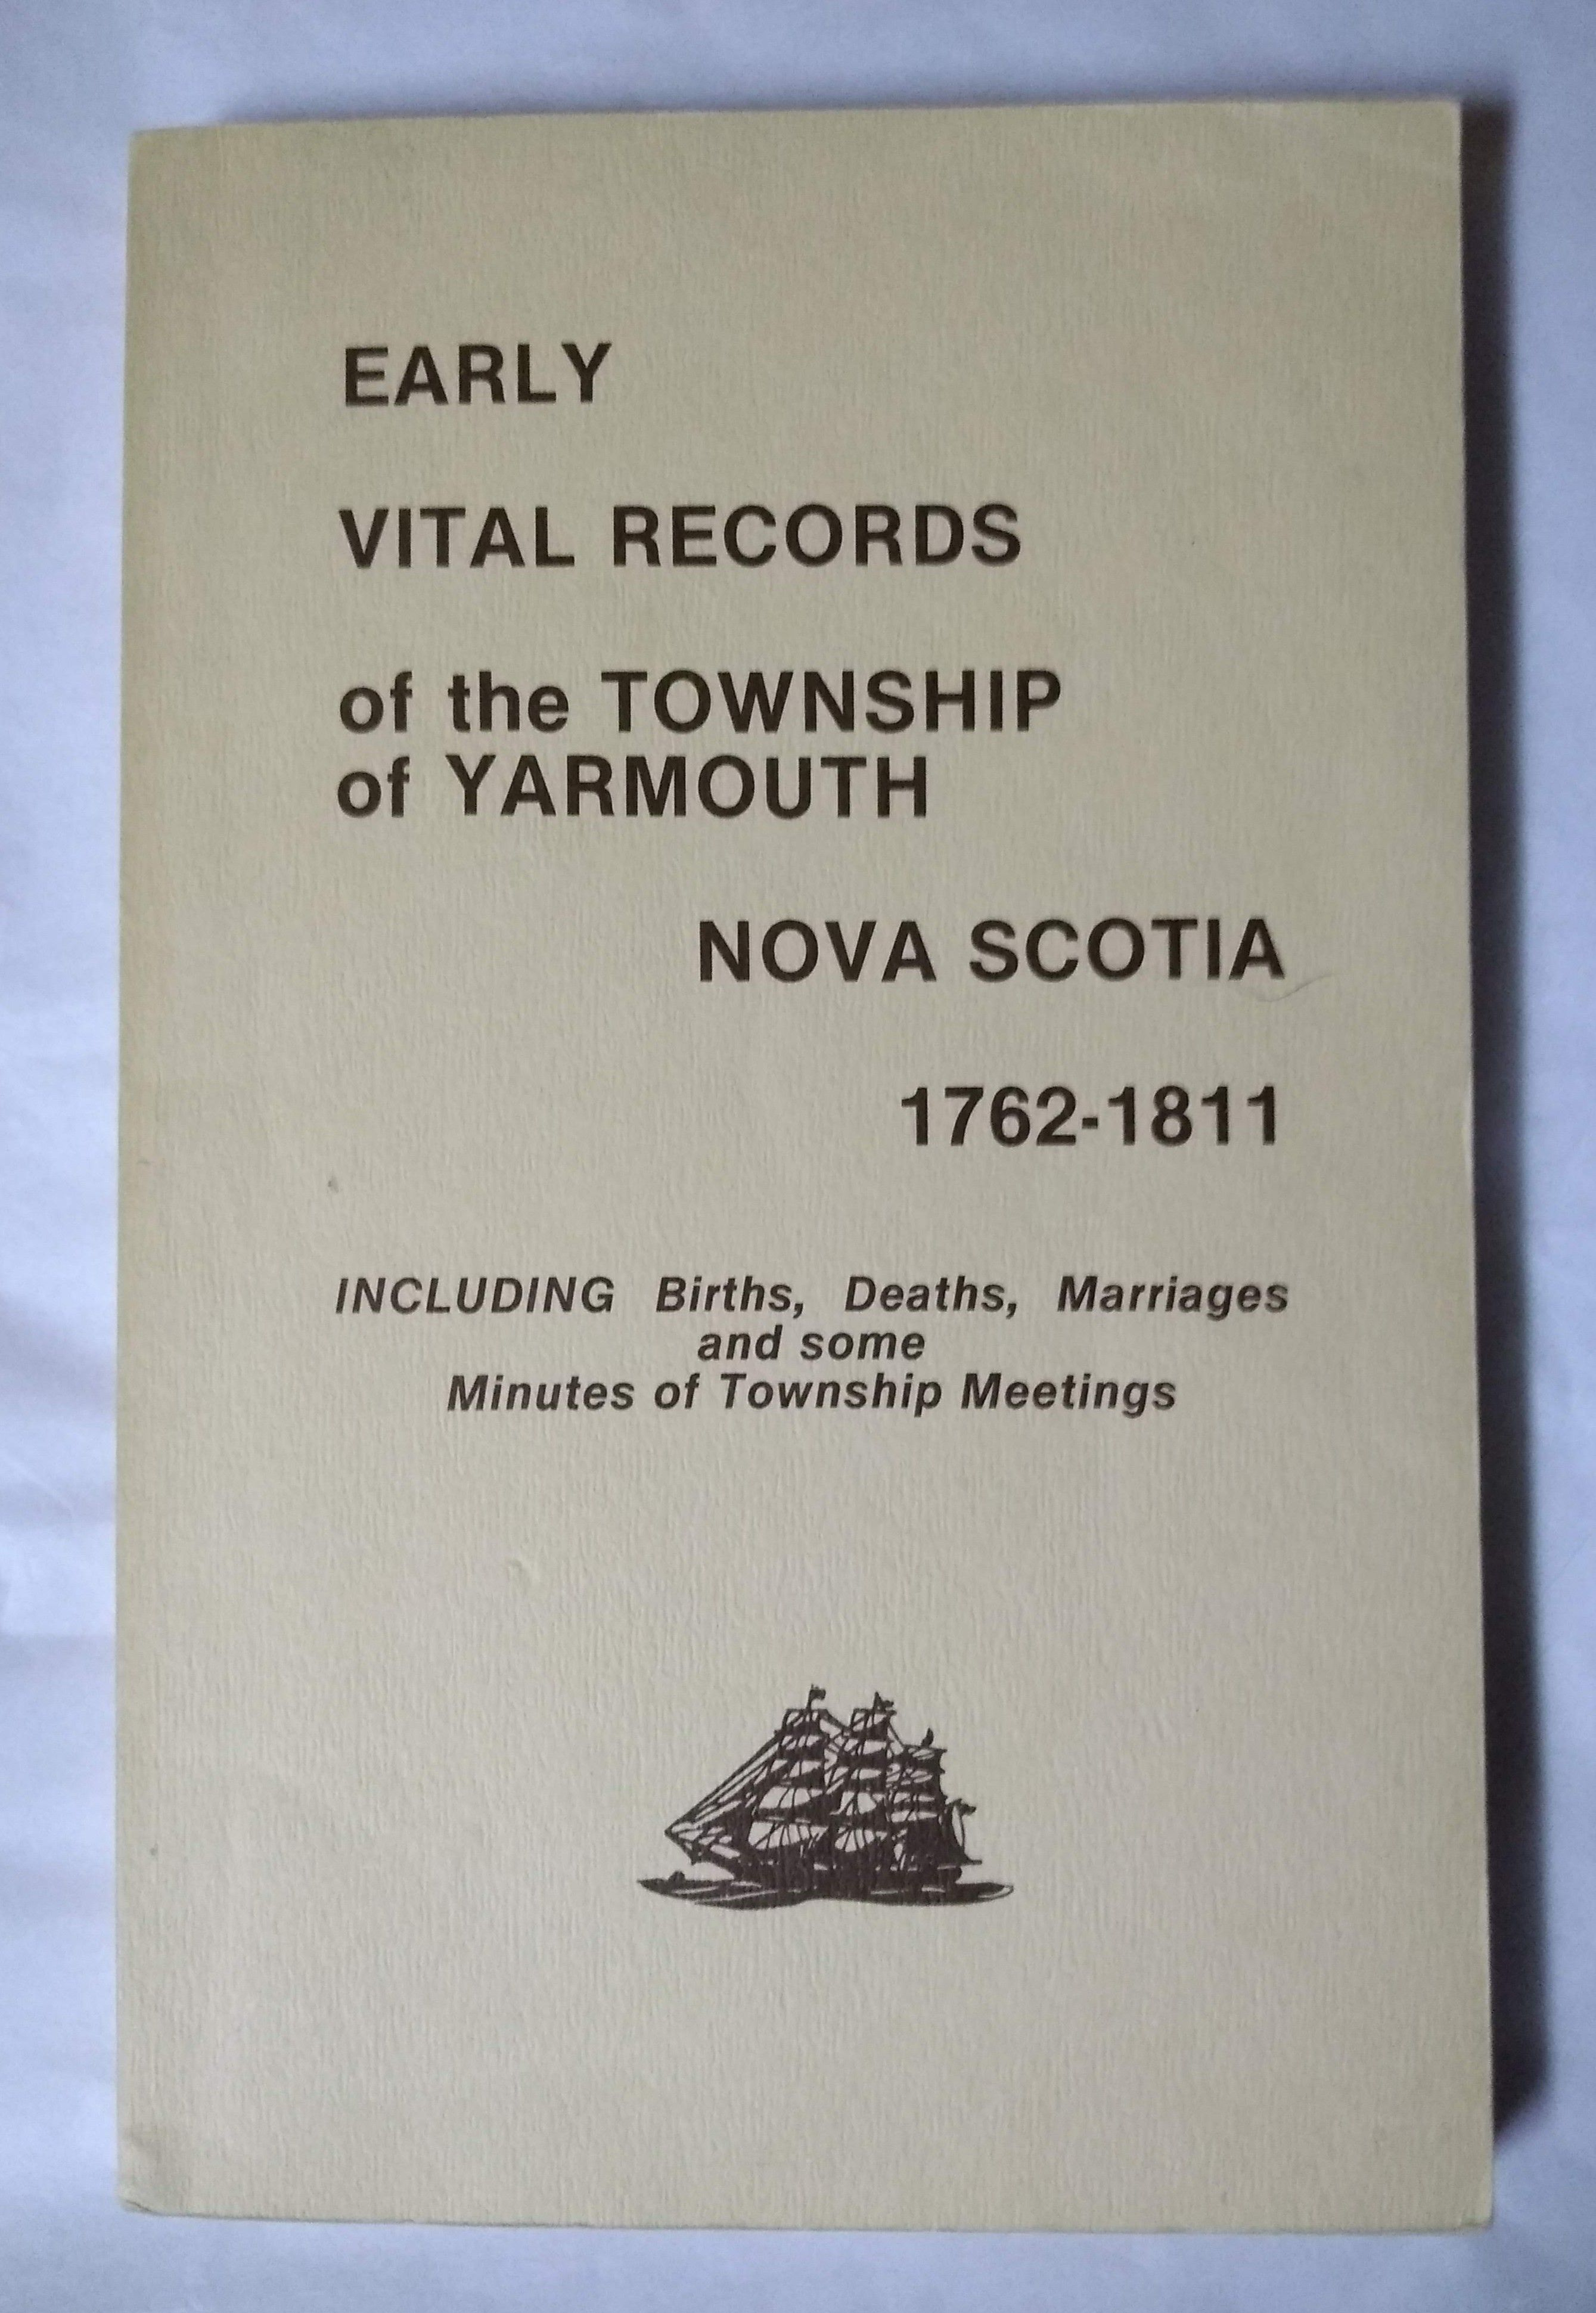 Early vital records of the township of Yarmouth, Nova Scotia, 1762-1811: First and second books, including births, deaths, marriages, and some minutes of township meetings